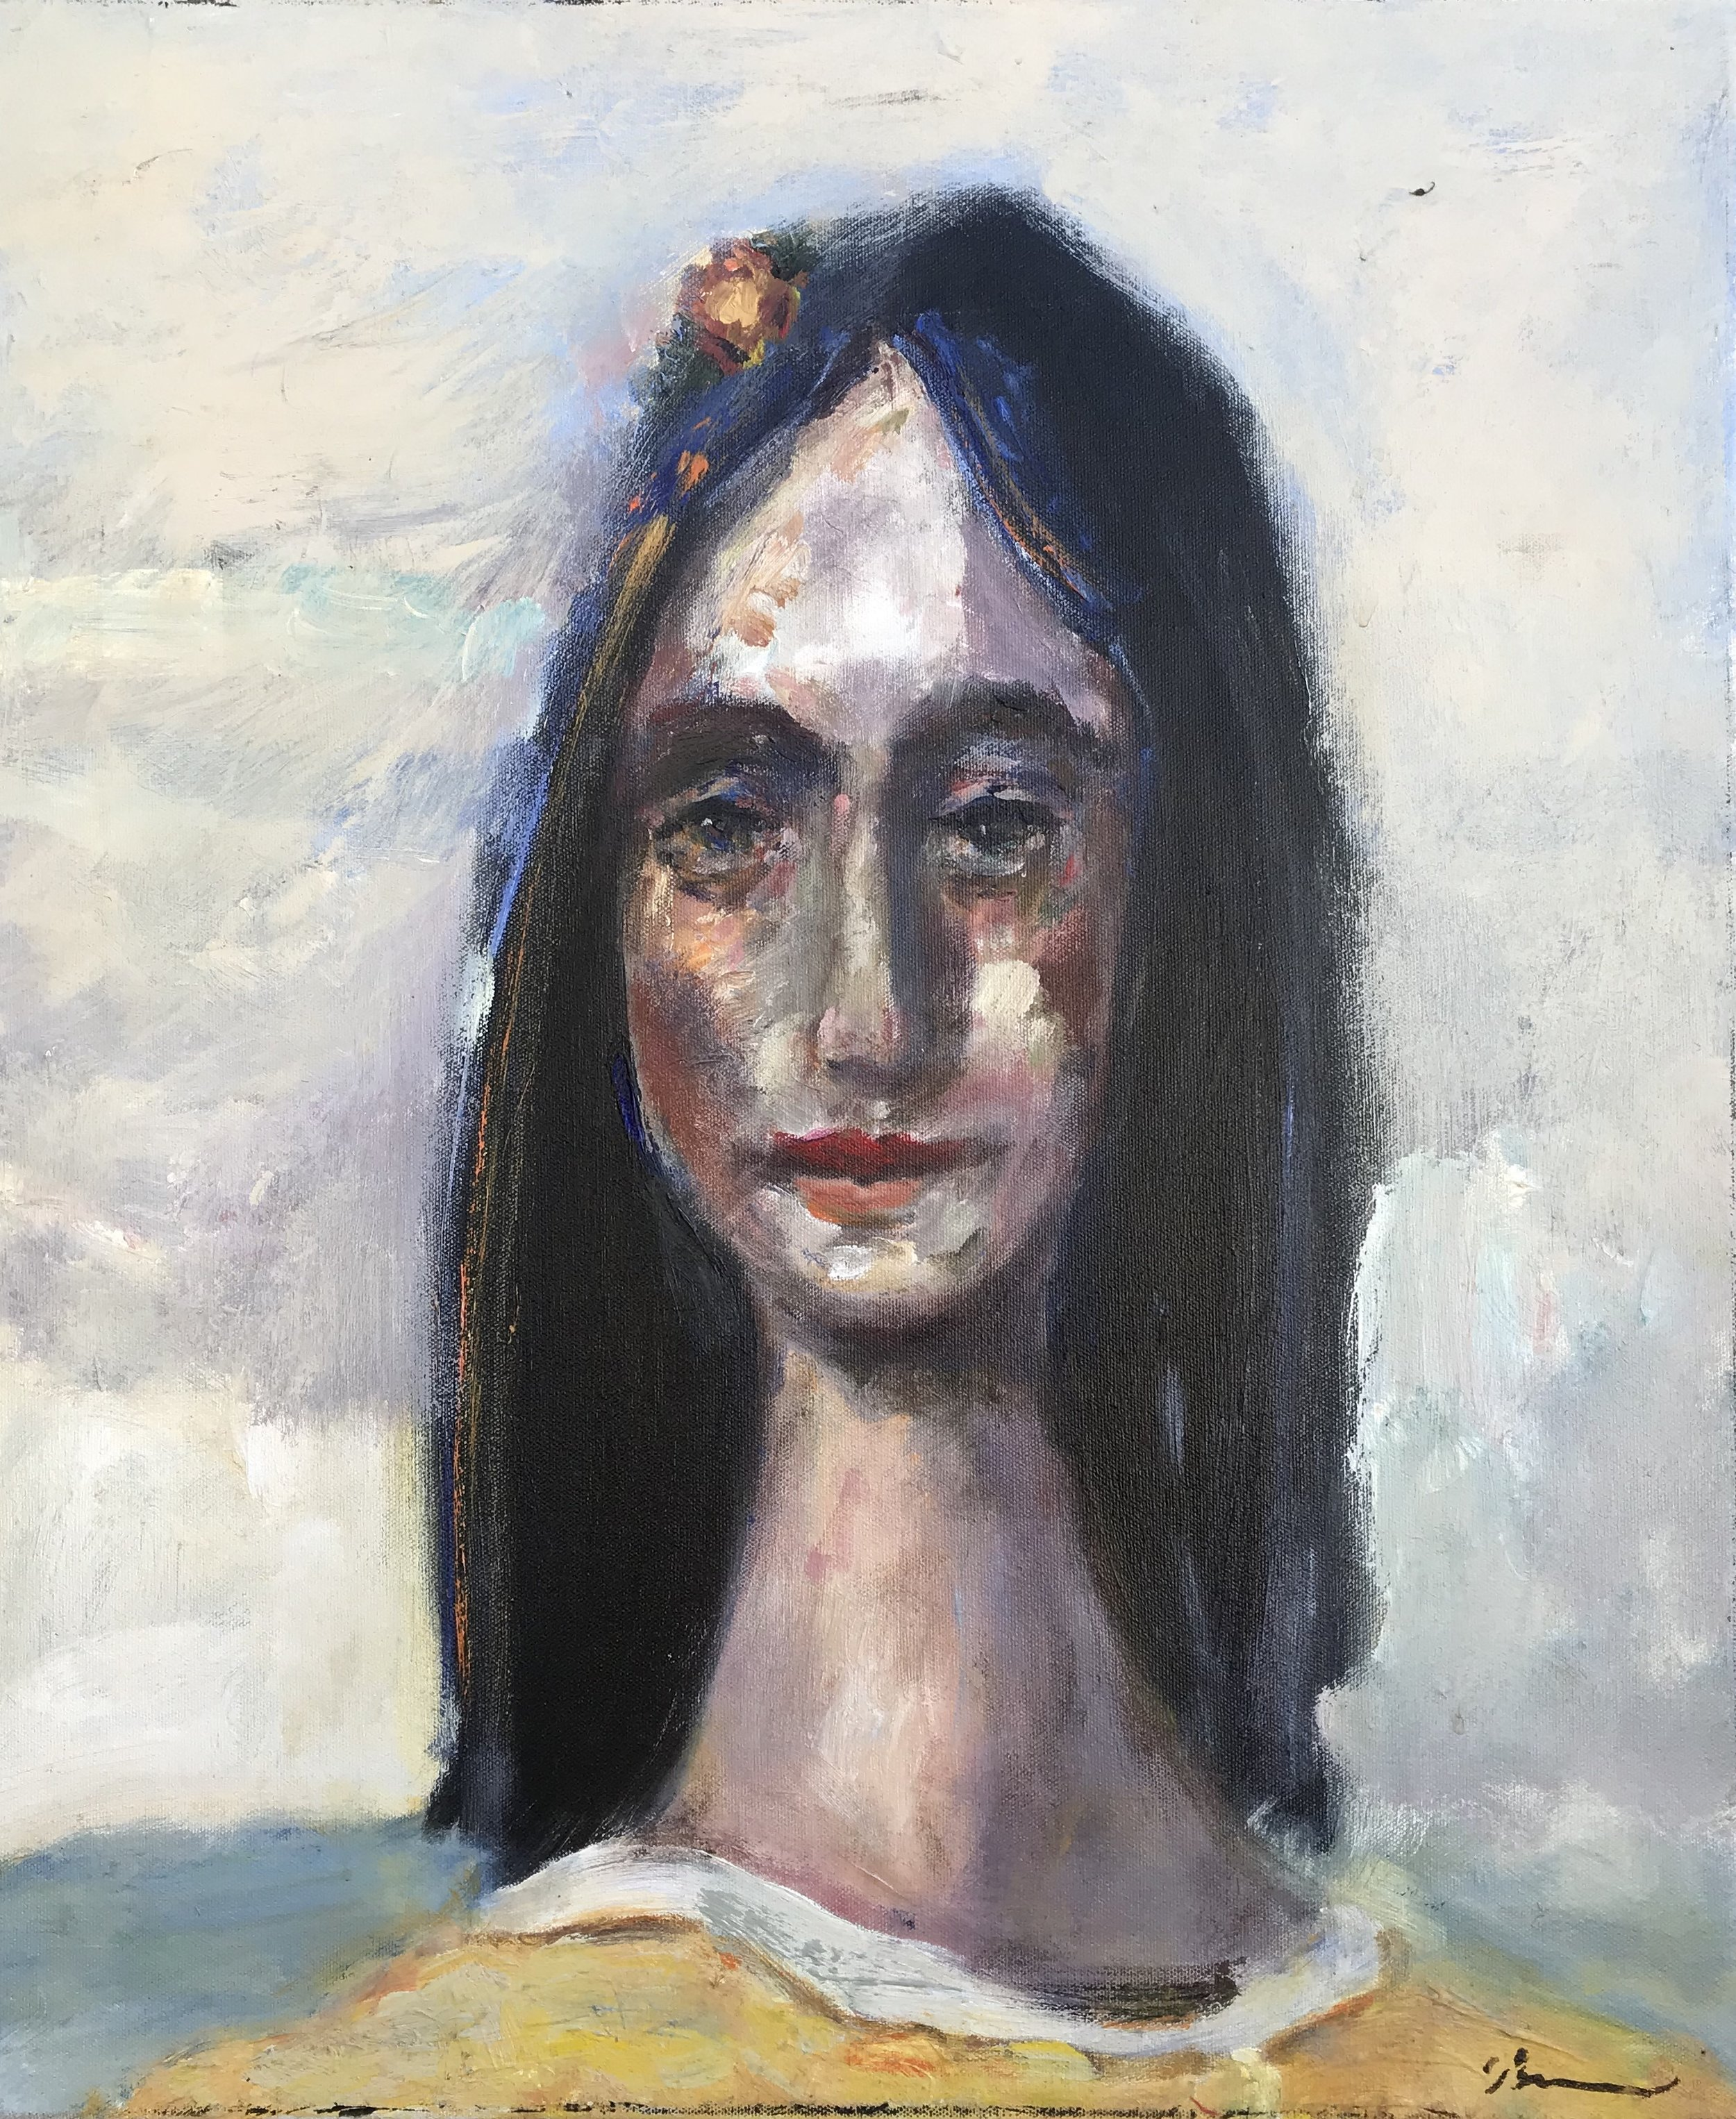 """""""Margaret Goes Out to Sea"""" - 24"""" x 20"""" x 3/4"""", oil on canvasValue: $2,300Opening bid: $900email your bid to: art@bradfordbrenner.com"""